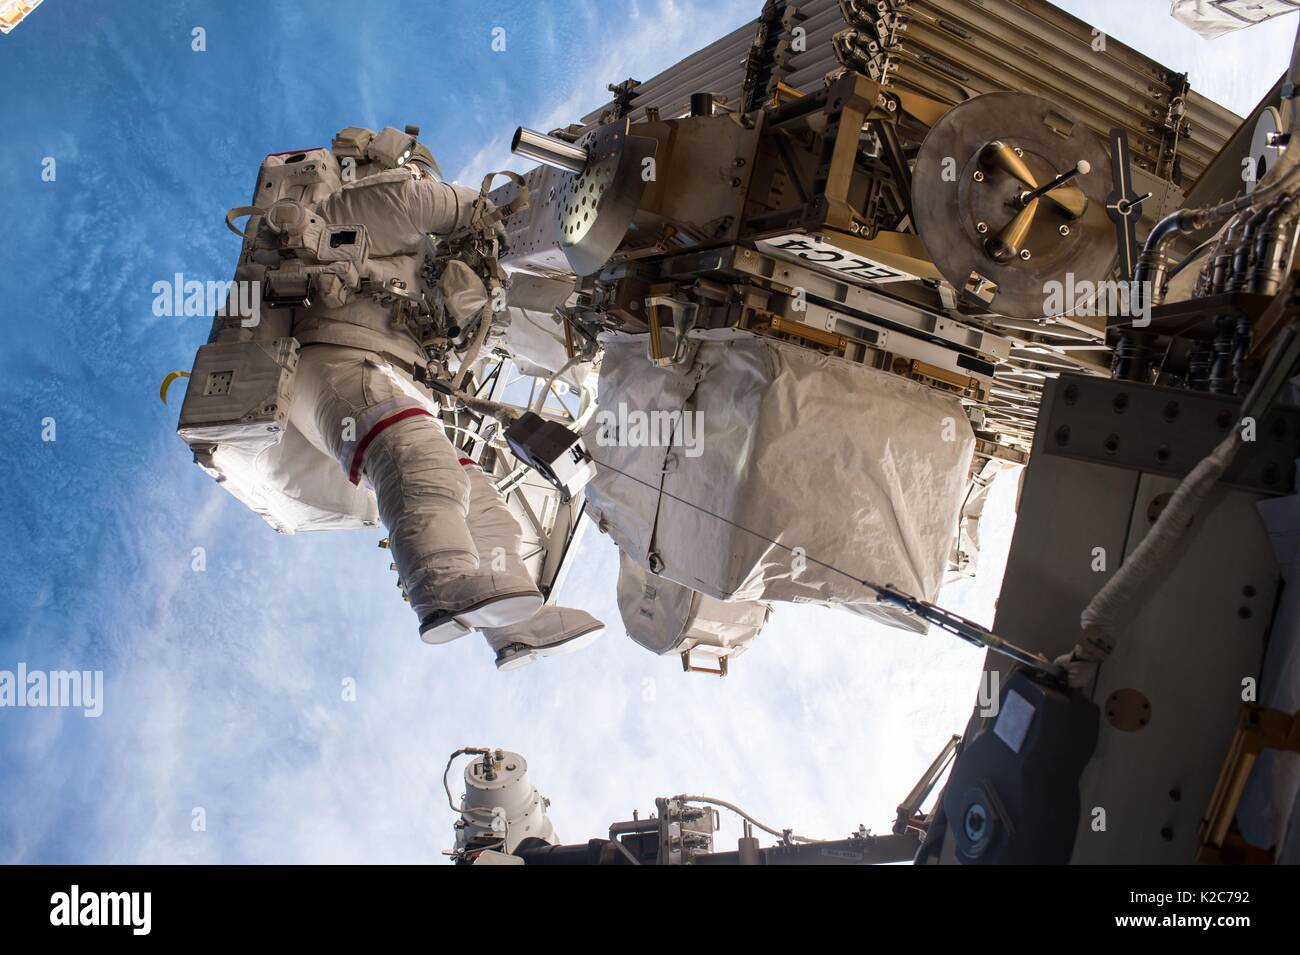 NASA International Space Station Expedition 51 prime crew member American astronaut Peggy Whitson works on the outside of the ISS during an EVA spacewalk May 12, 2017 in Earth orbit. - Stock Image